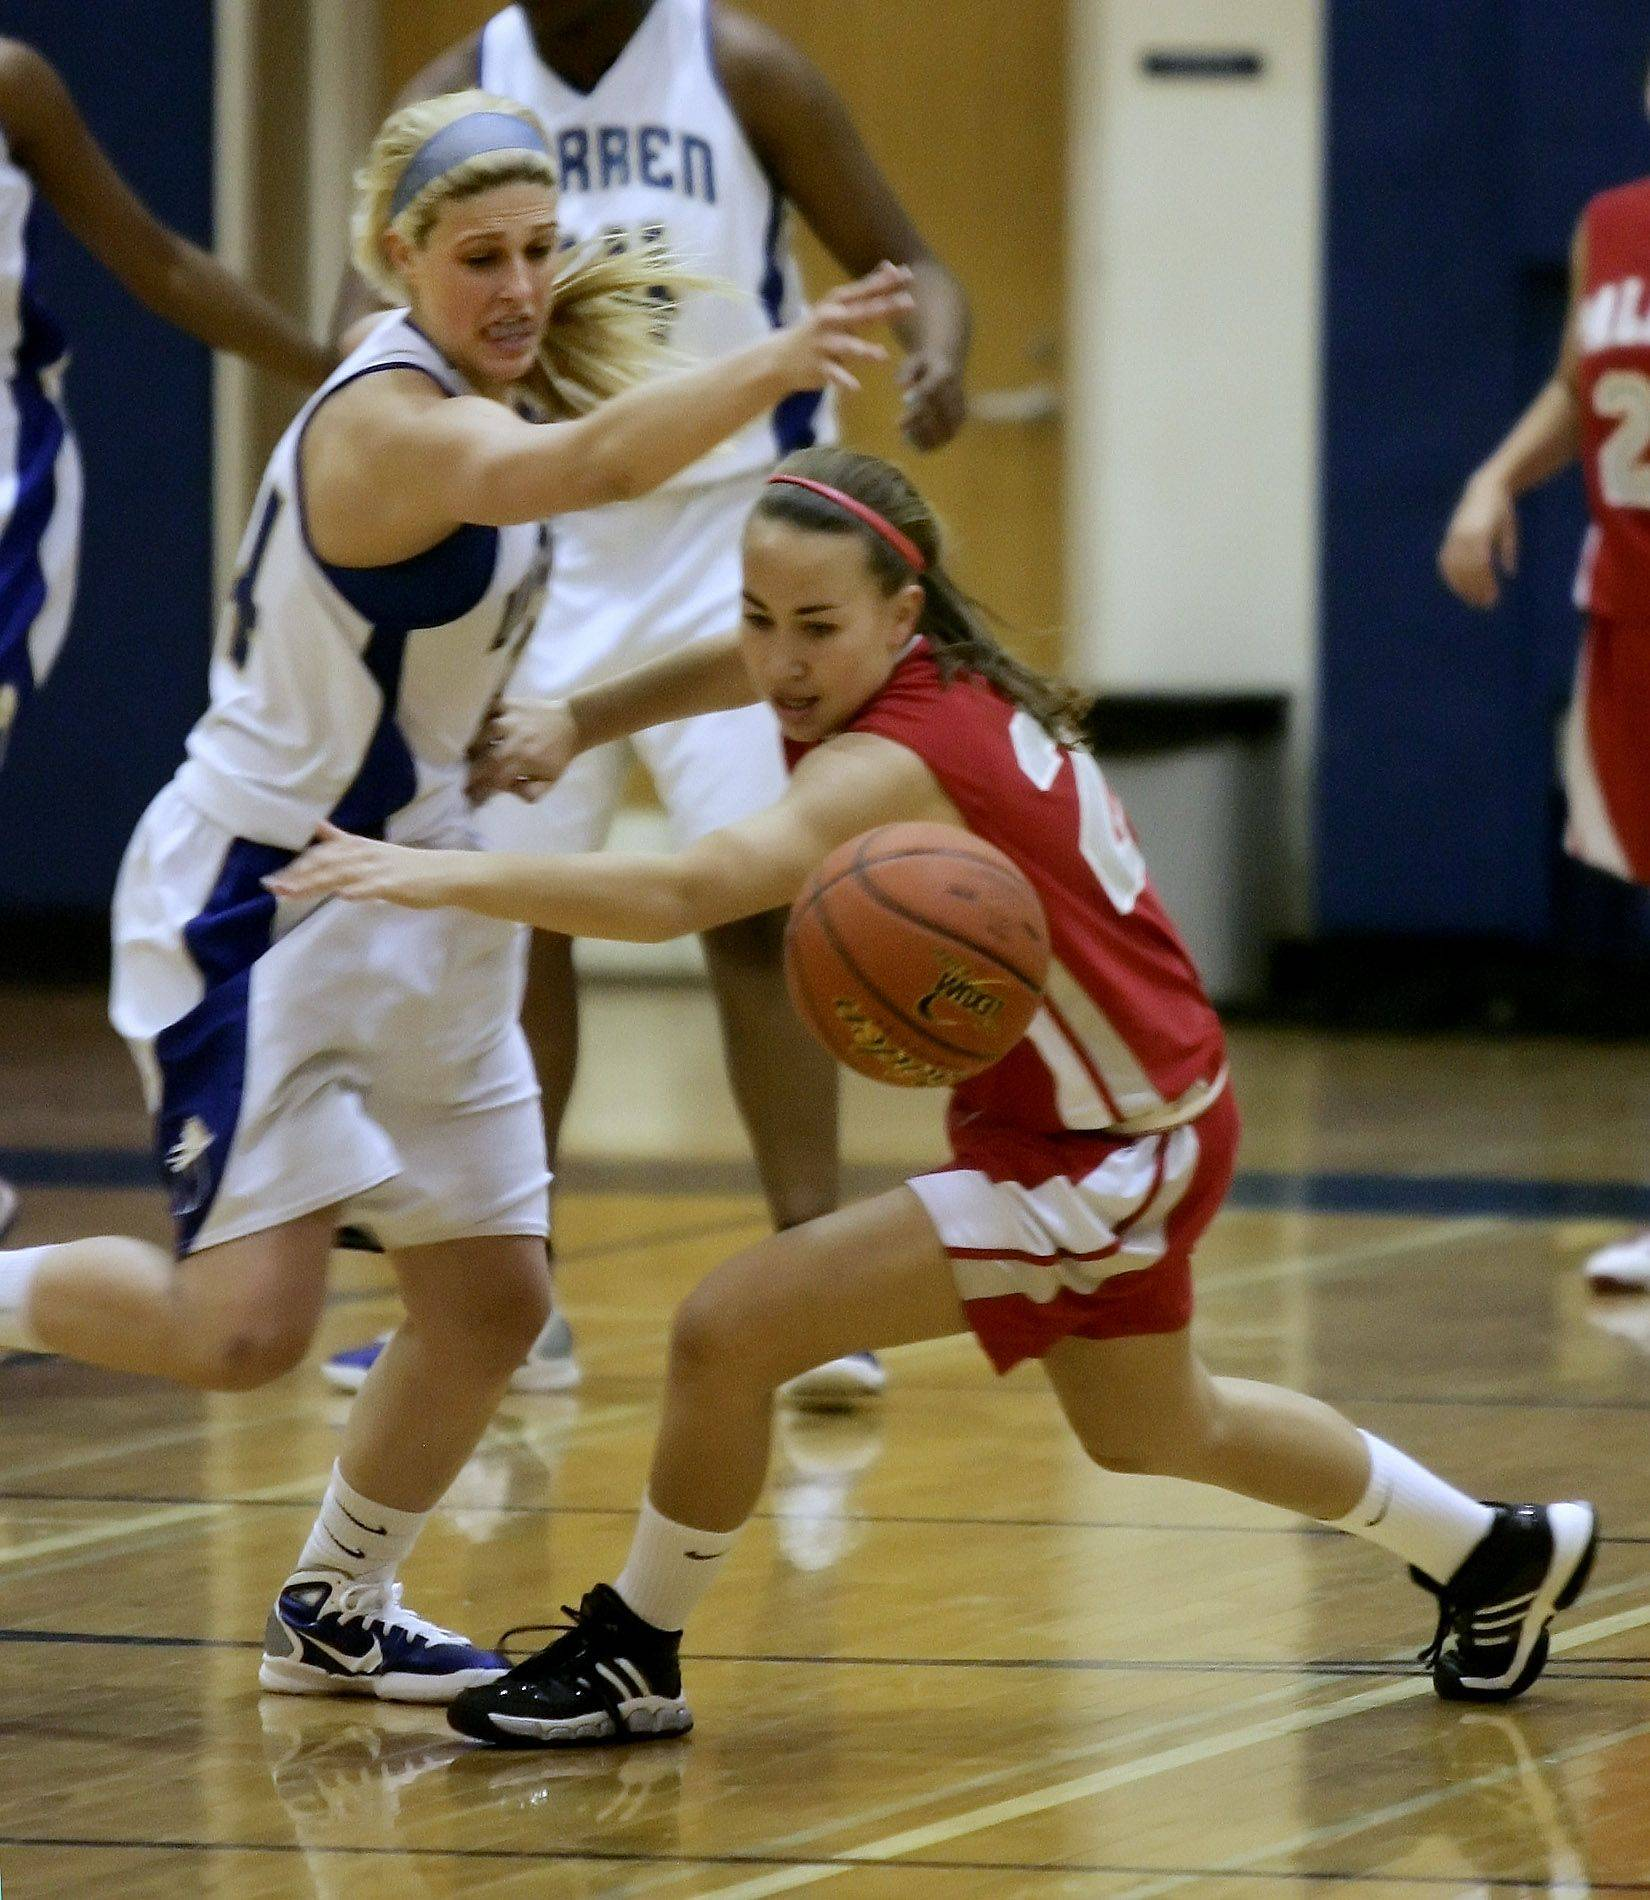 Warren guard Amanda Barger knocks the ball away from Palatine guard Laura Schweikert during the girls basketball game between Palatine and Warren Tuesday in the 2010 Blue Devil Classic at Warren Township High School in Gurnee.